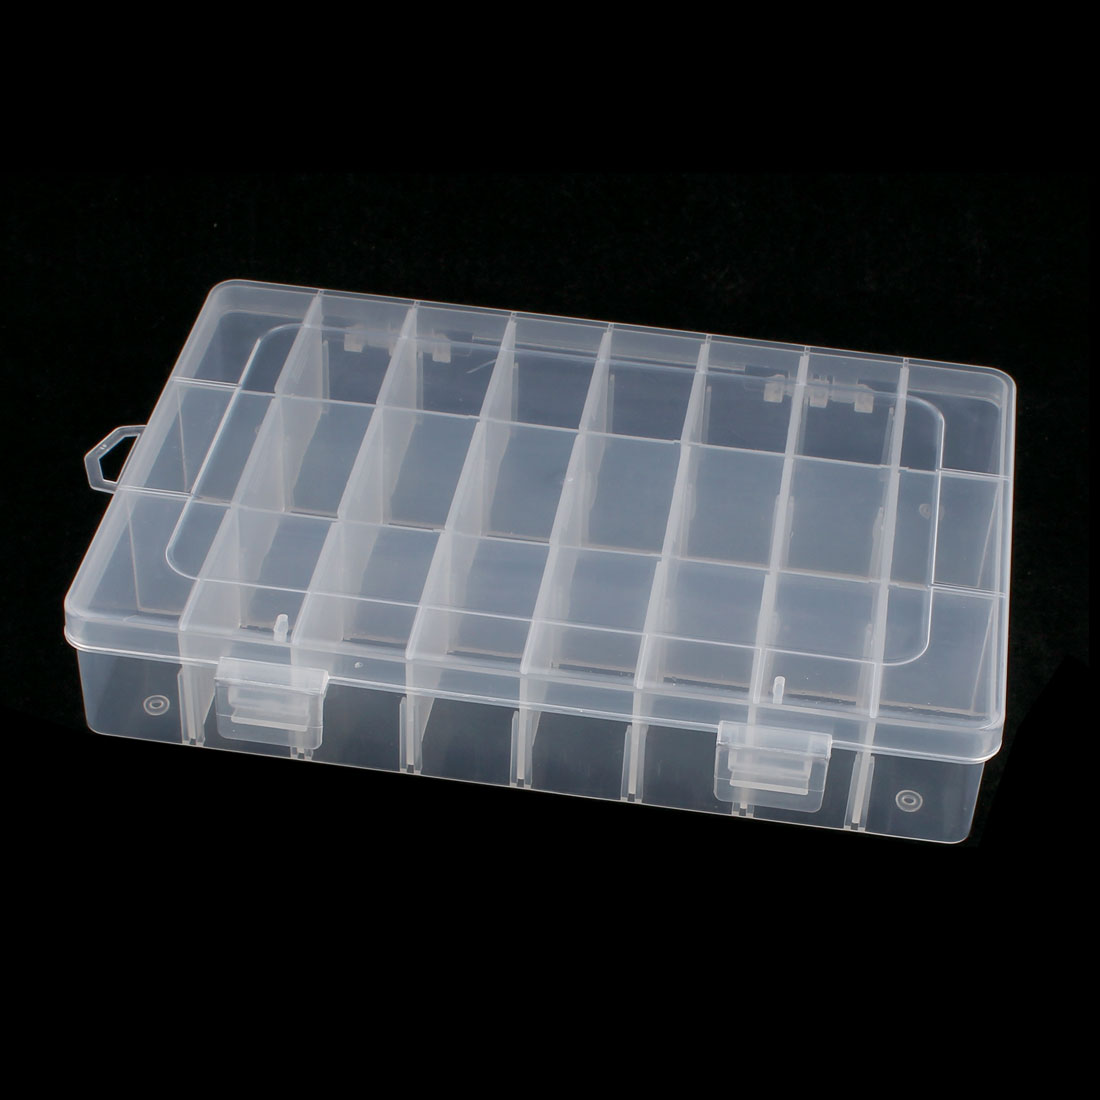 Electronic Components Tool Rectangle Plastic Detachable 3 Layers 8 Slots Storage Case Box Holder 19.5cmx13cmx3.5cm